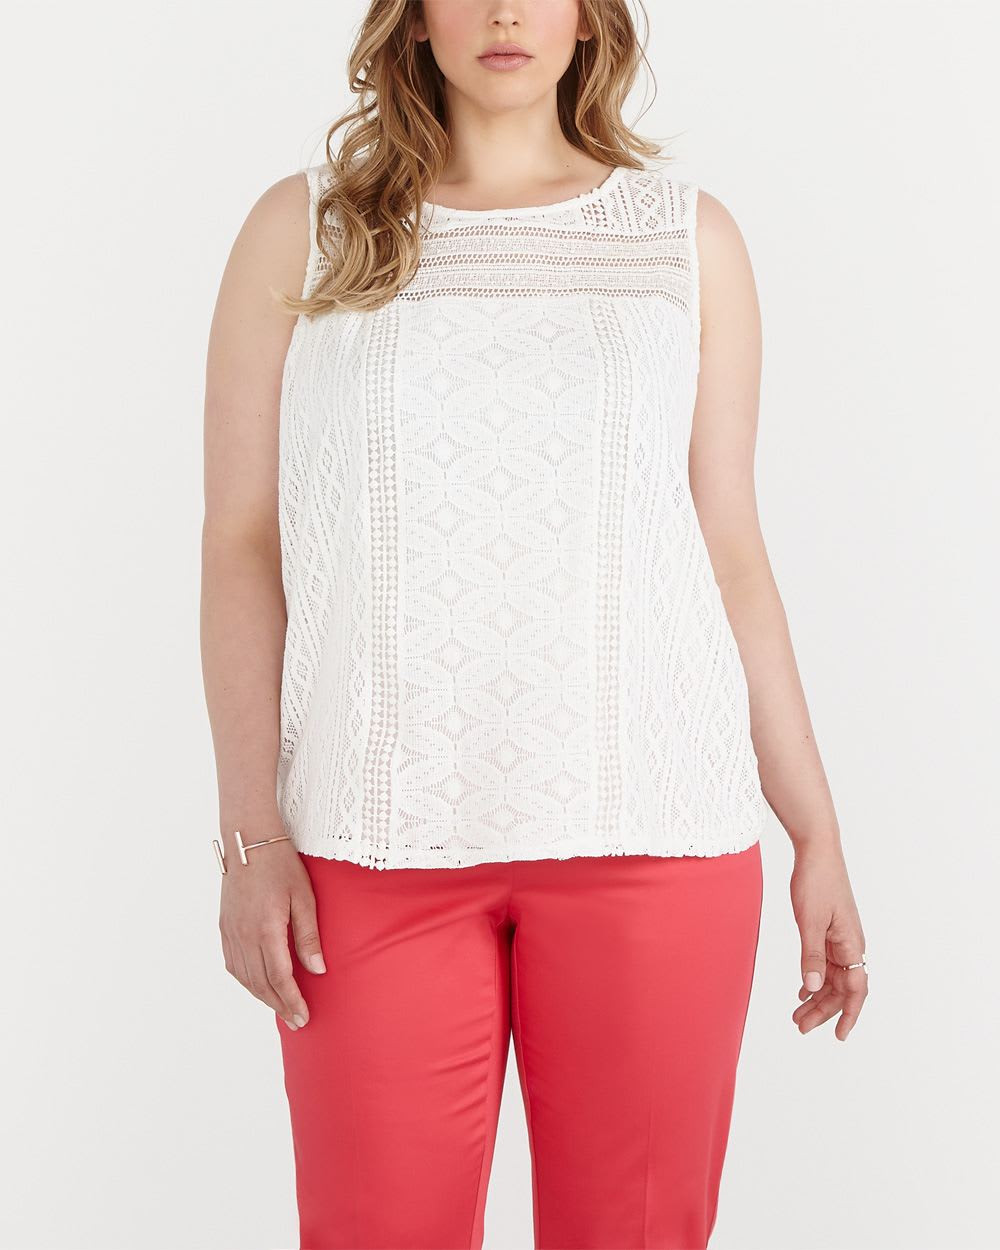 Plus Size Sleeveless Crochet Top Plus Sizes